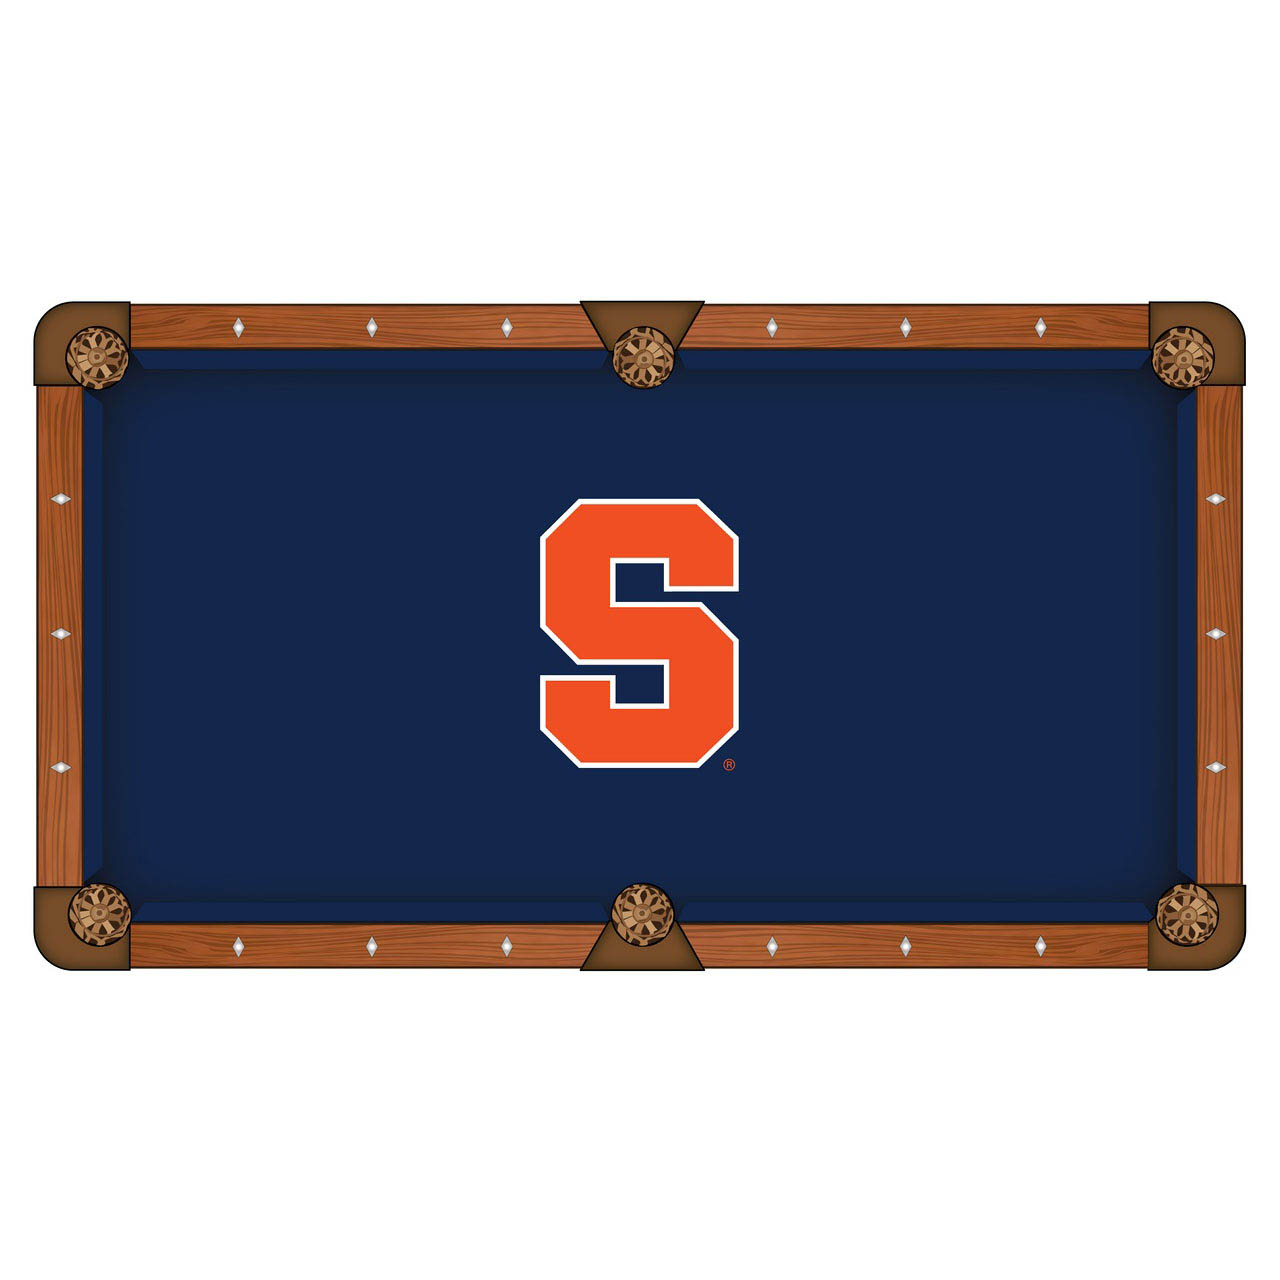 High-class Syracuse University Pool Table Cloth Product Photo